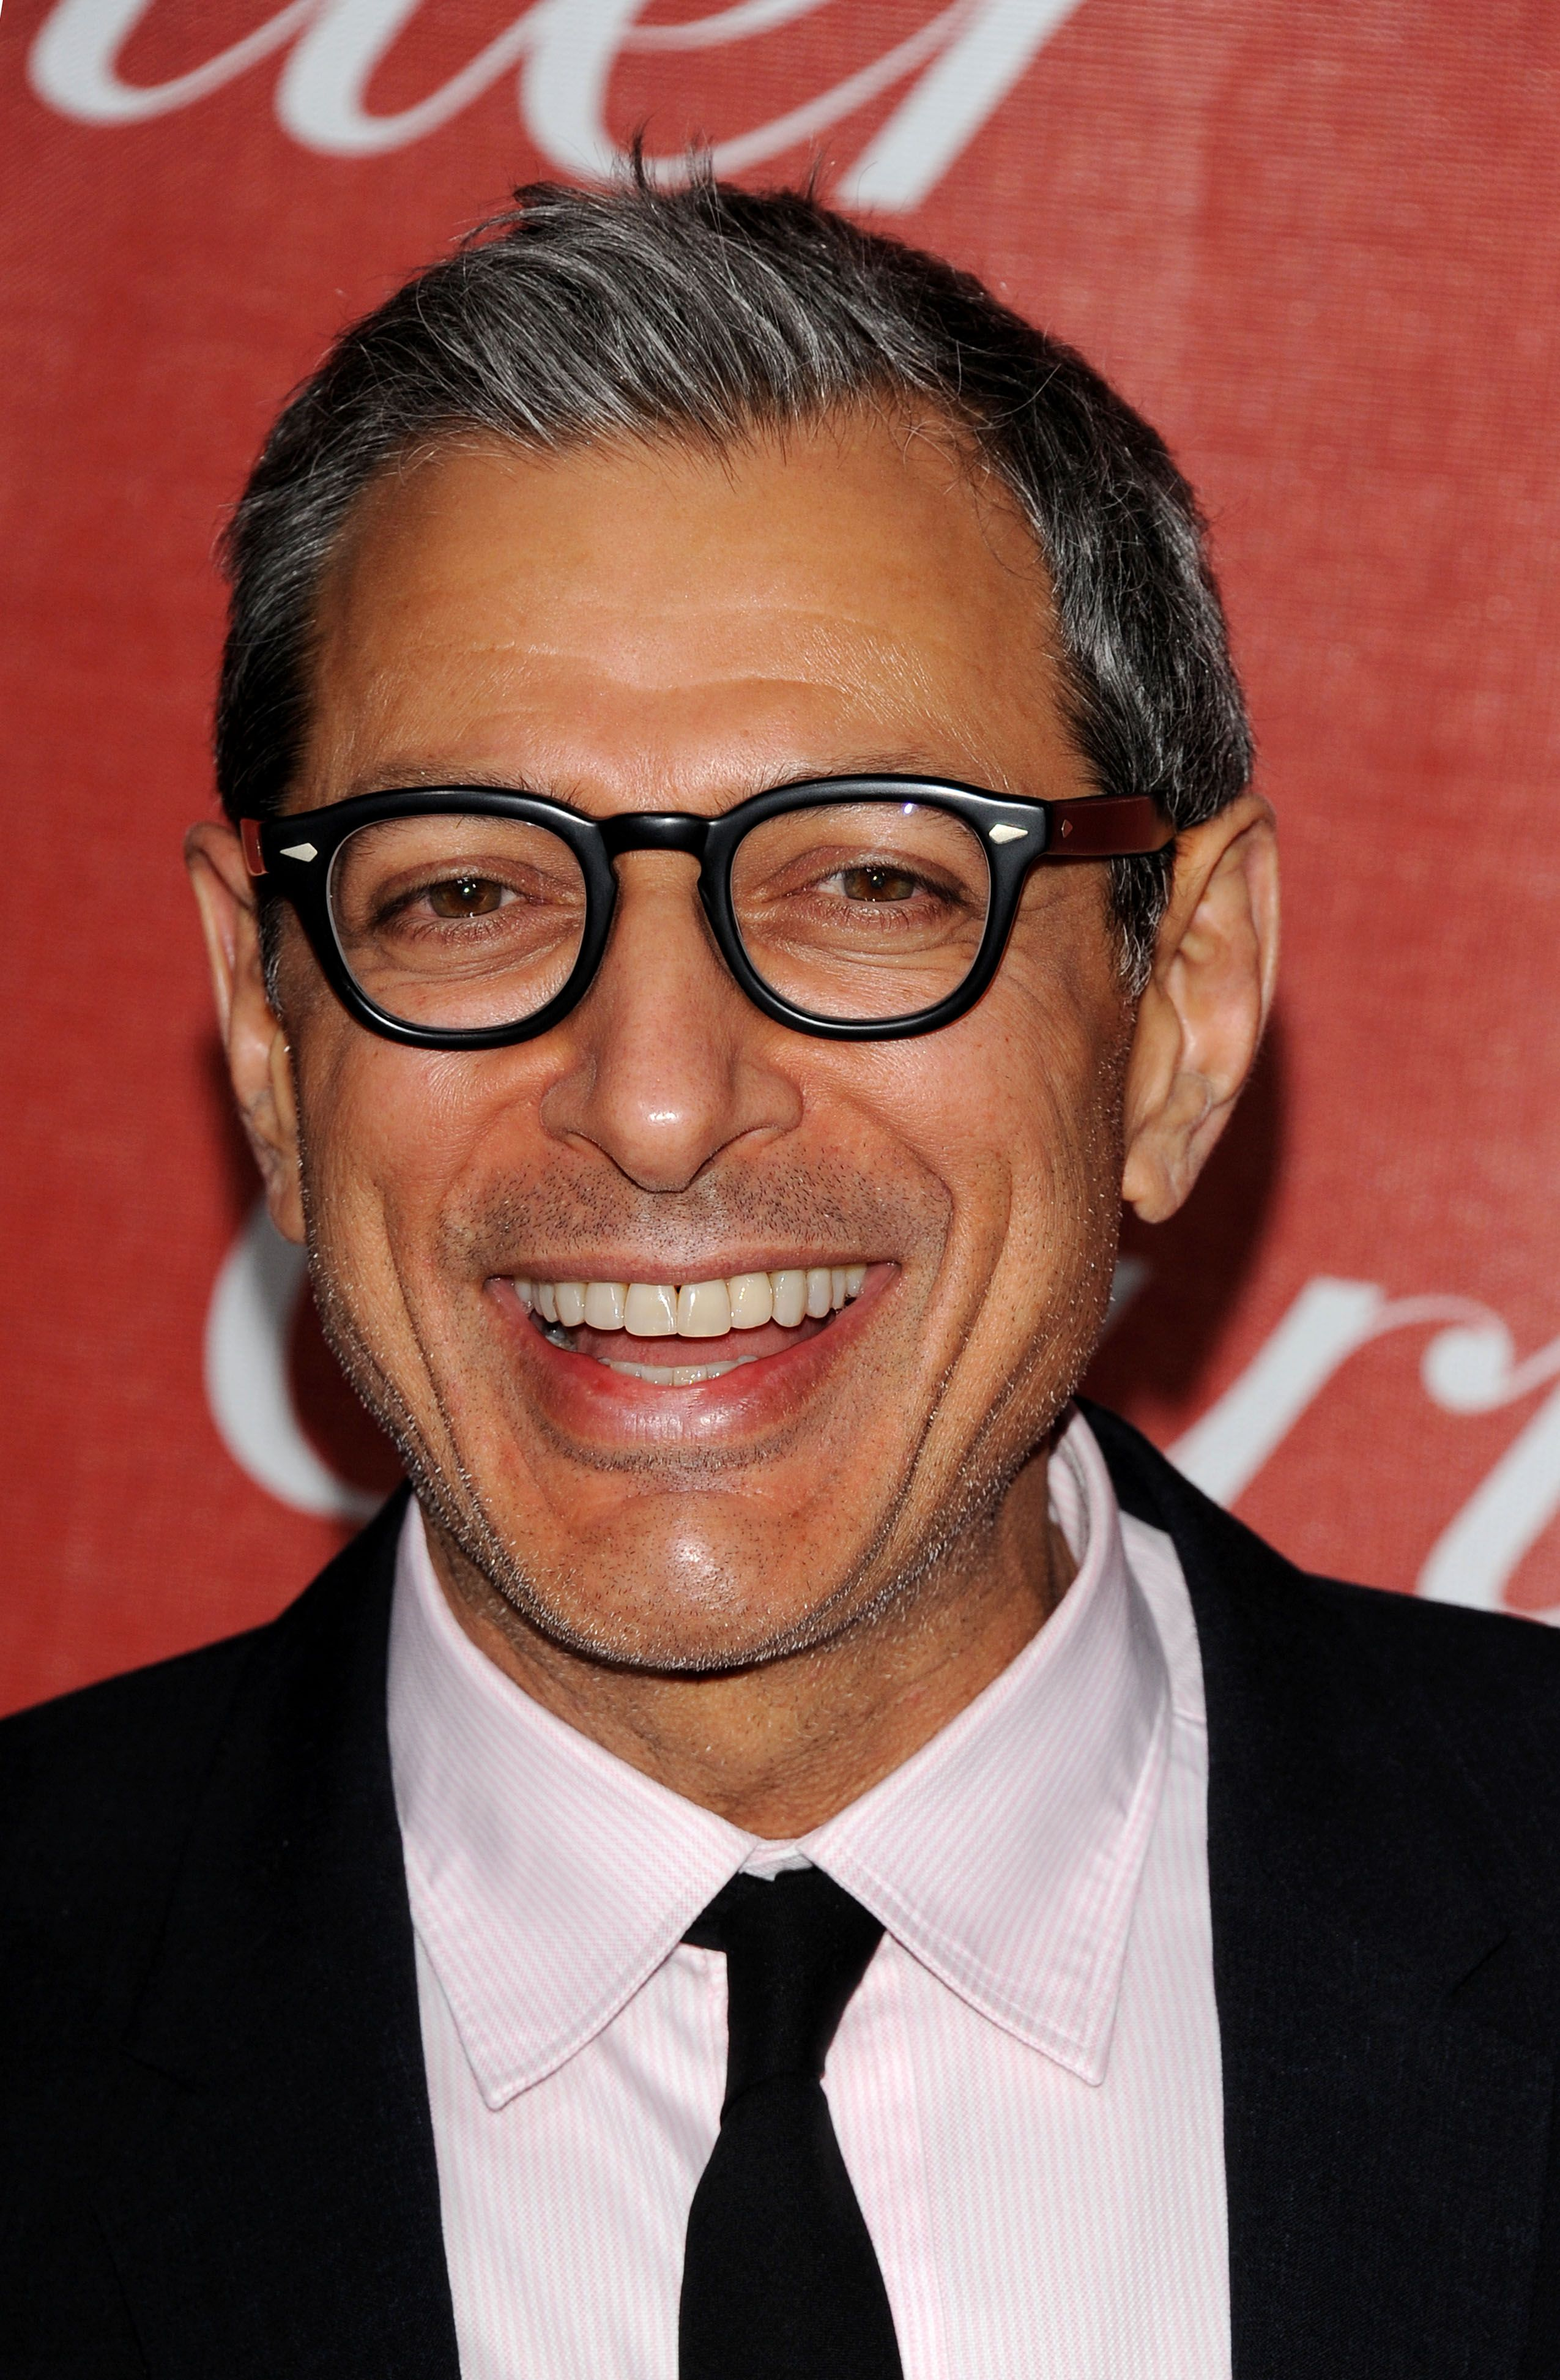 Jeff Goldblum Born 10 22 52 Who The Hang That I Knew Does He Remind Me Of Hmm I May Be Getting An Idea Nice T Actors Favorite Celebrities Tv Actors